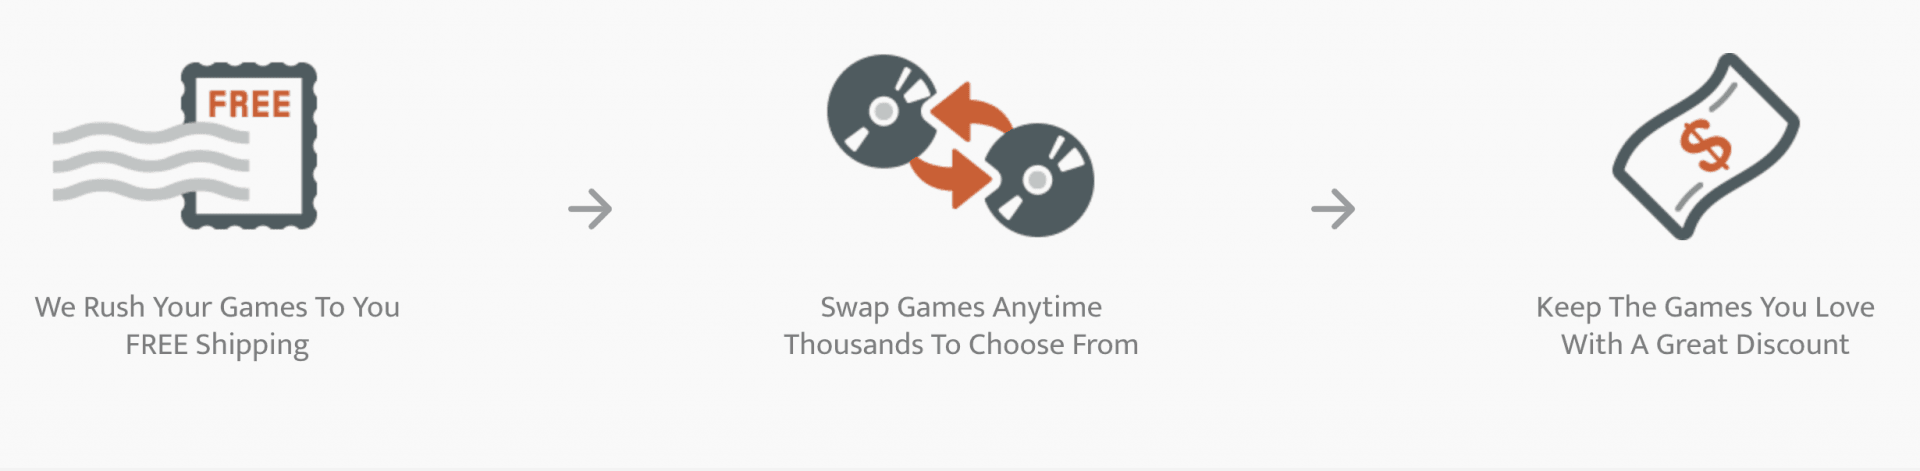 GameFly: Are Game Rentals Via Snail Mail Still Worth It Today? - How does GameFly work? 2